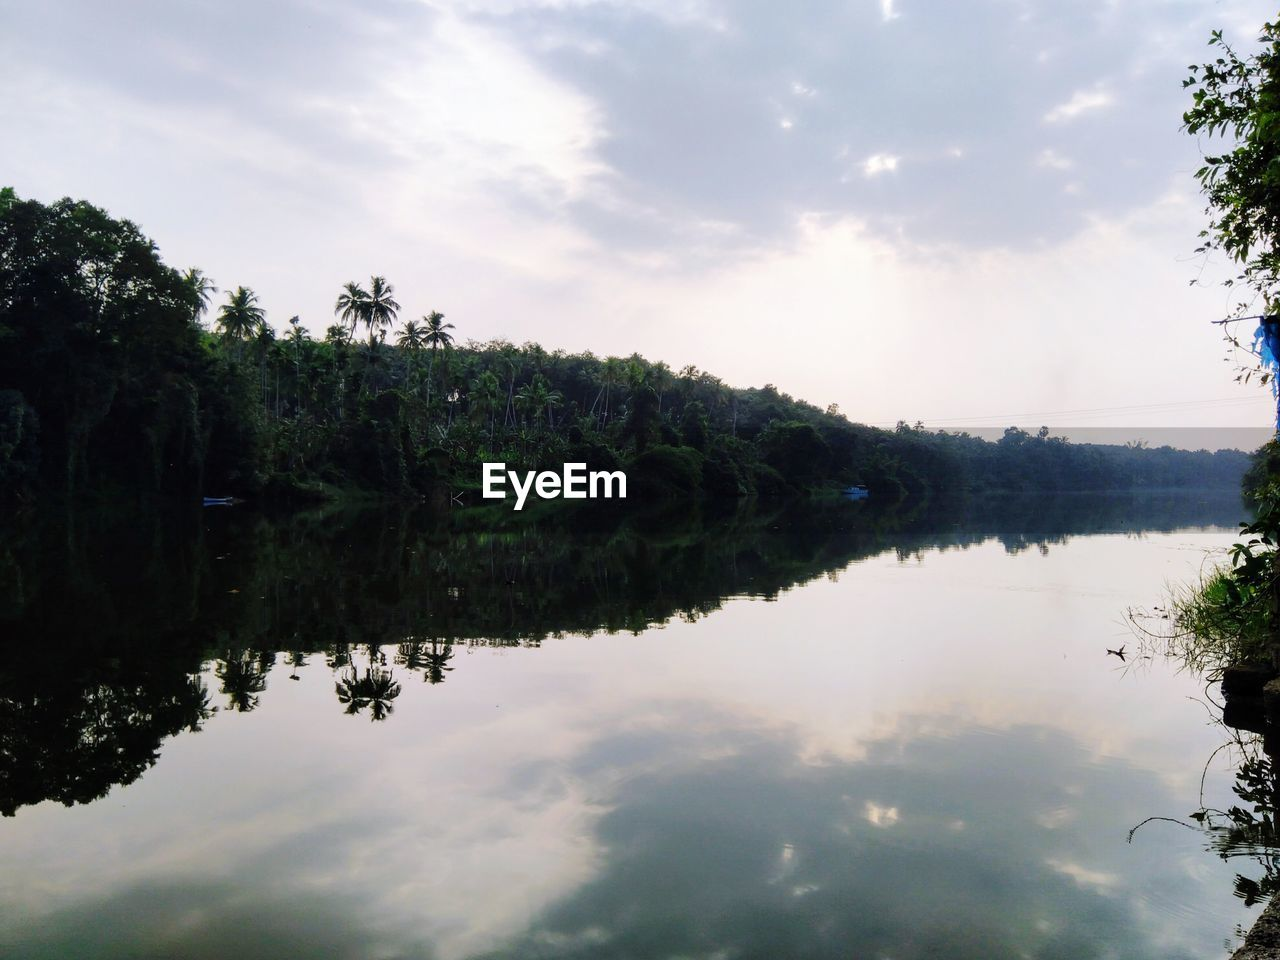 sky, water, tree, plant, reflection, cloud - sky, tranquility, beauty in nature, lake, tranquil scene, scenics - nature, nature, growth, waterfront, no people, non-urban scene, day, idyllic, outdoors, reflection lake